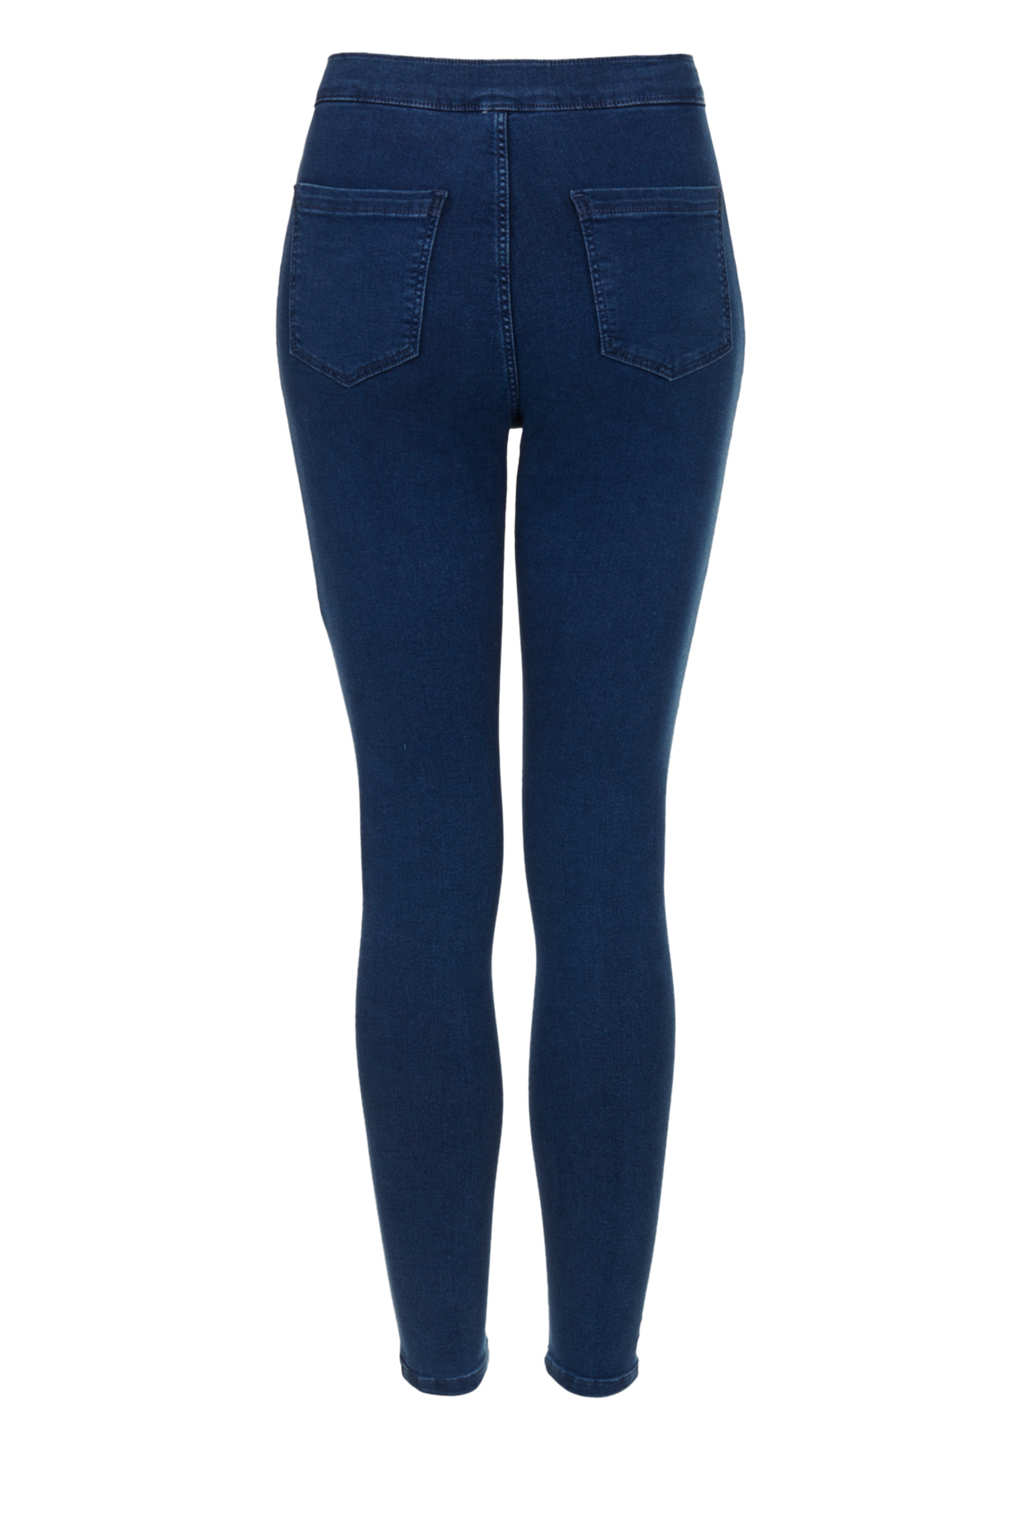 topshop petite moto high waisted jeans in blue lyst. Black Bedroom Furniture Sets. Home Design Ideas